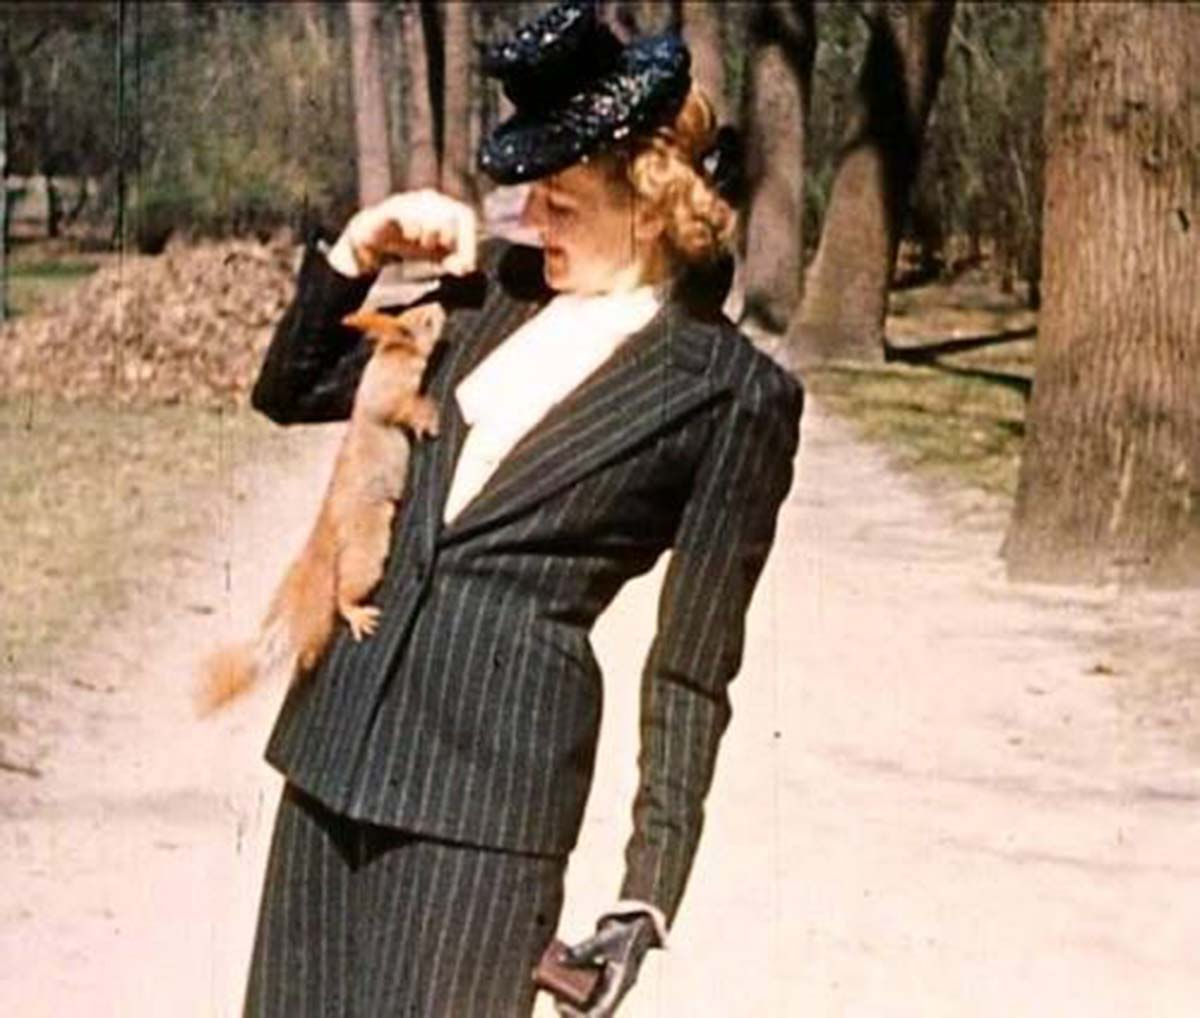 Eva Braun in a surprisingly modern-looking outfit. She loved to take pictures of herself and Adolf playing with local animals.